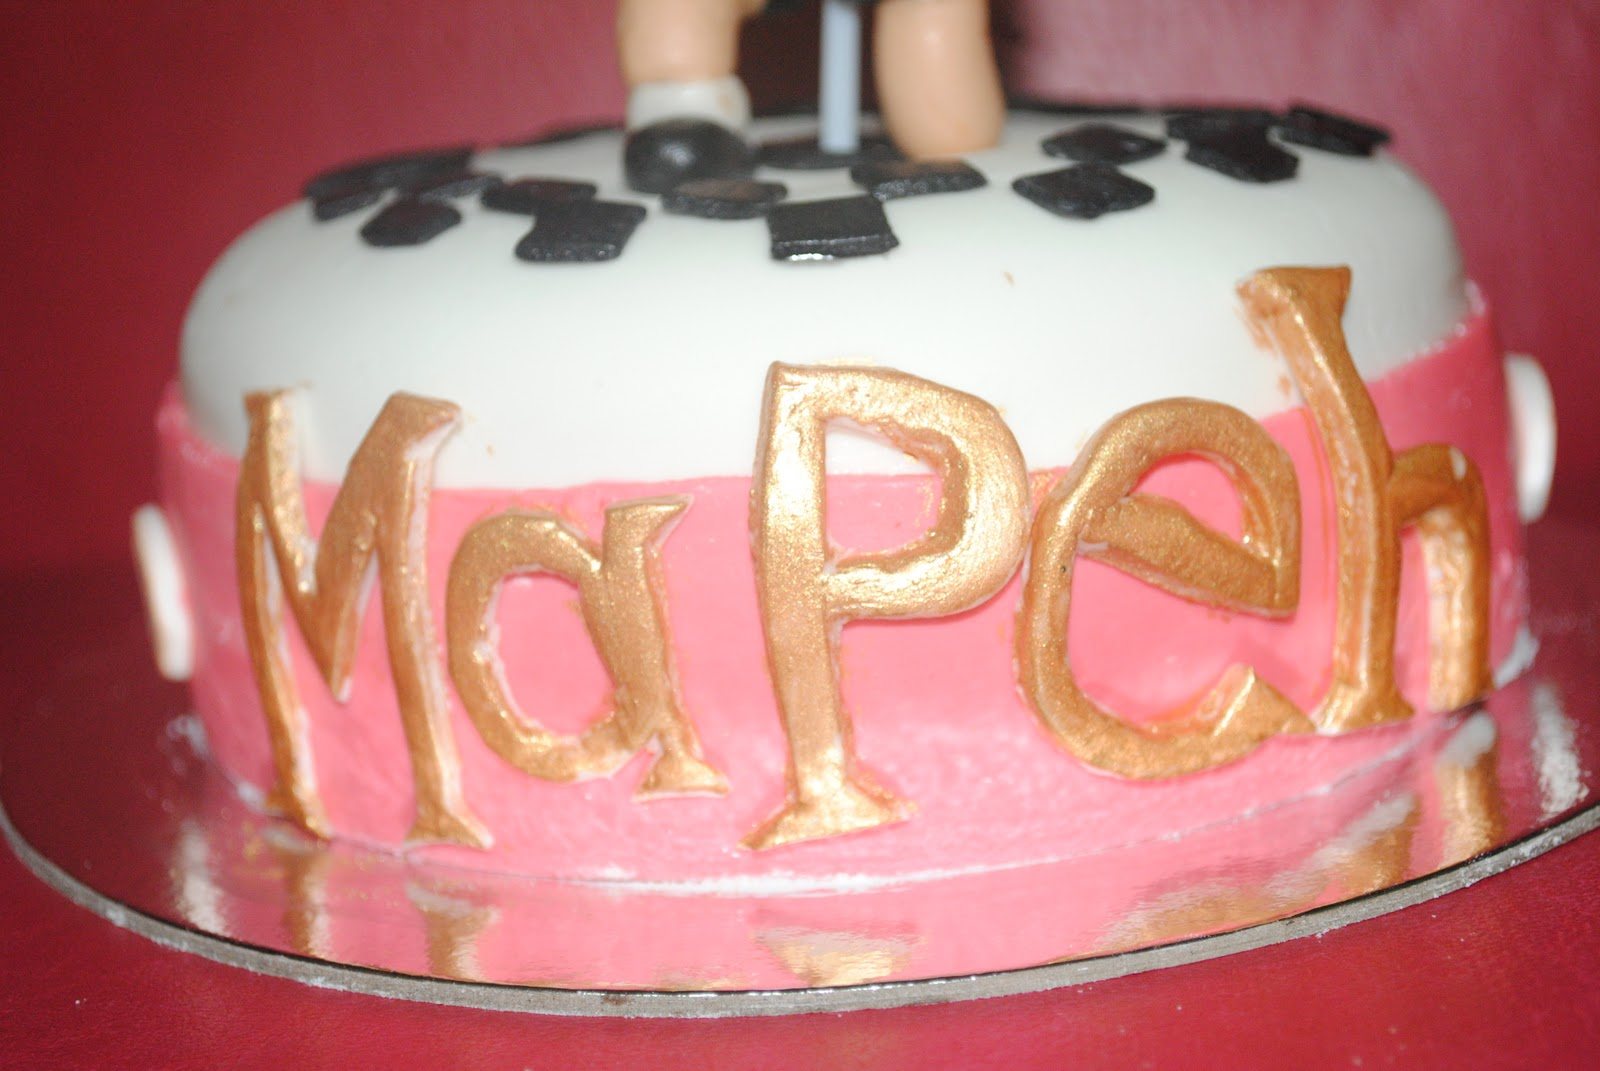 cakebug: Physical Education in a cake?